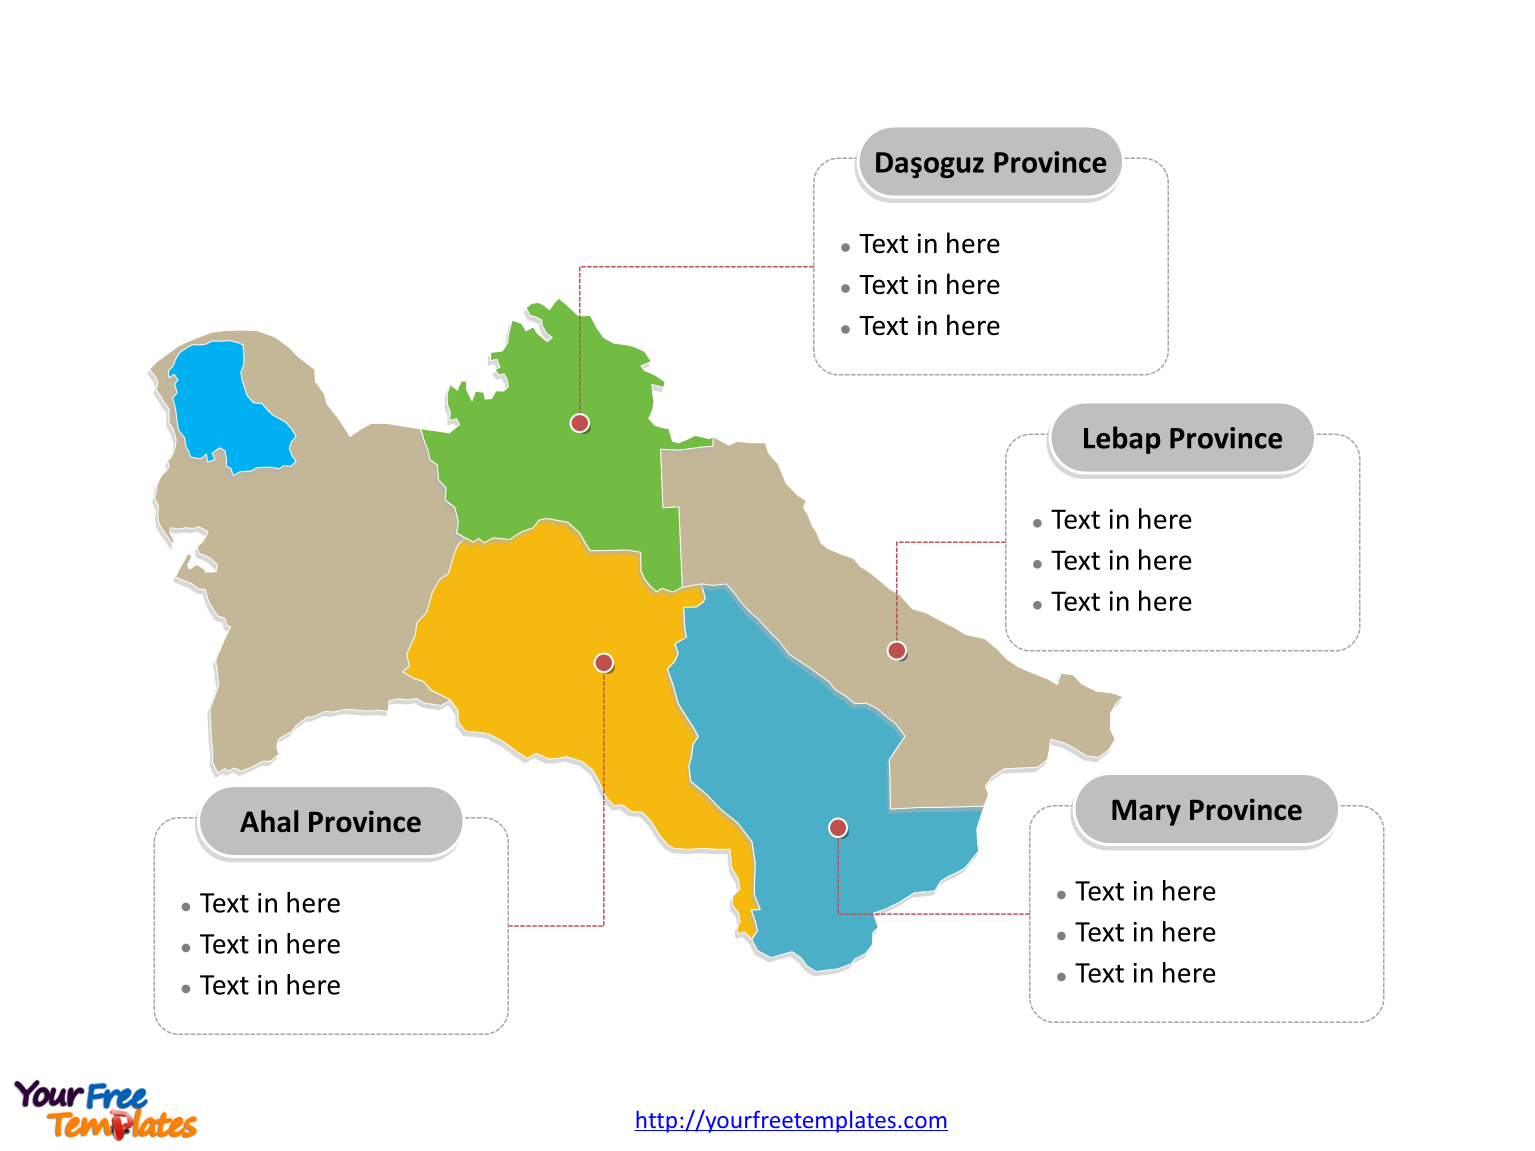 Turkmenistan Municipality map labeled with major Provinces